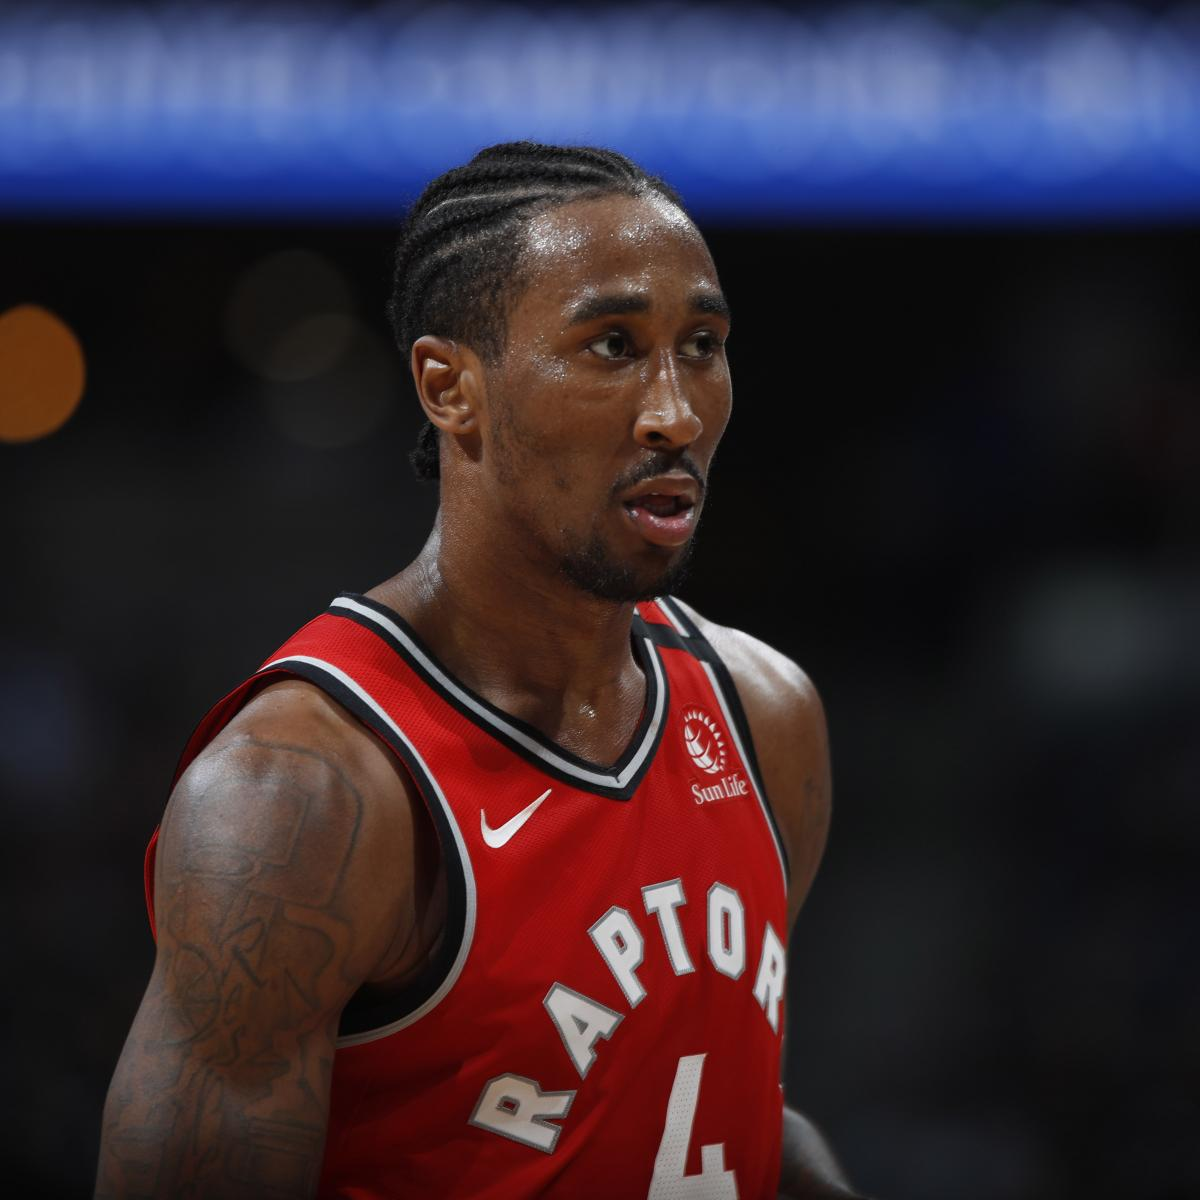 Report: Rondae Hollis-Jefferson, Timberwolves Agree to Contract in Free Agency